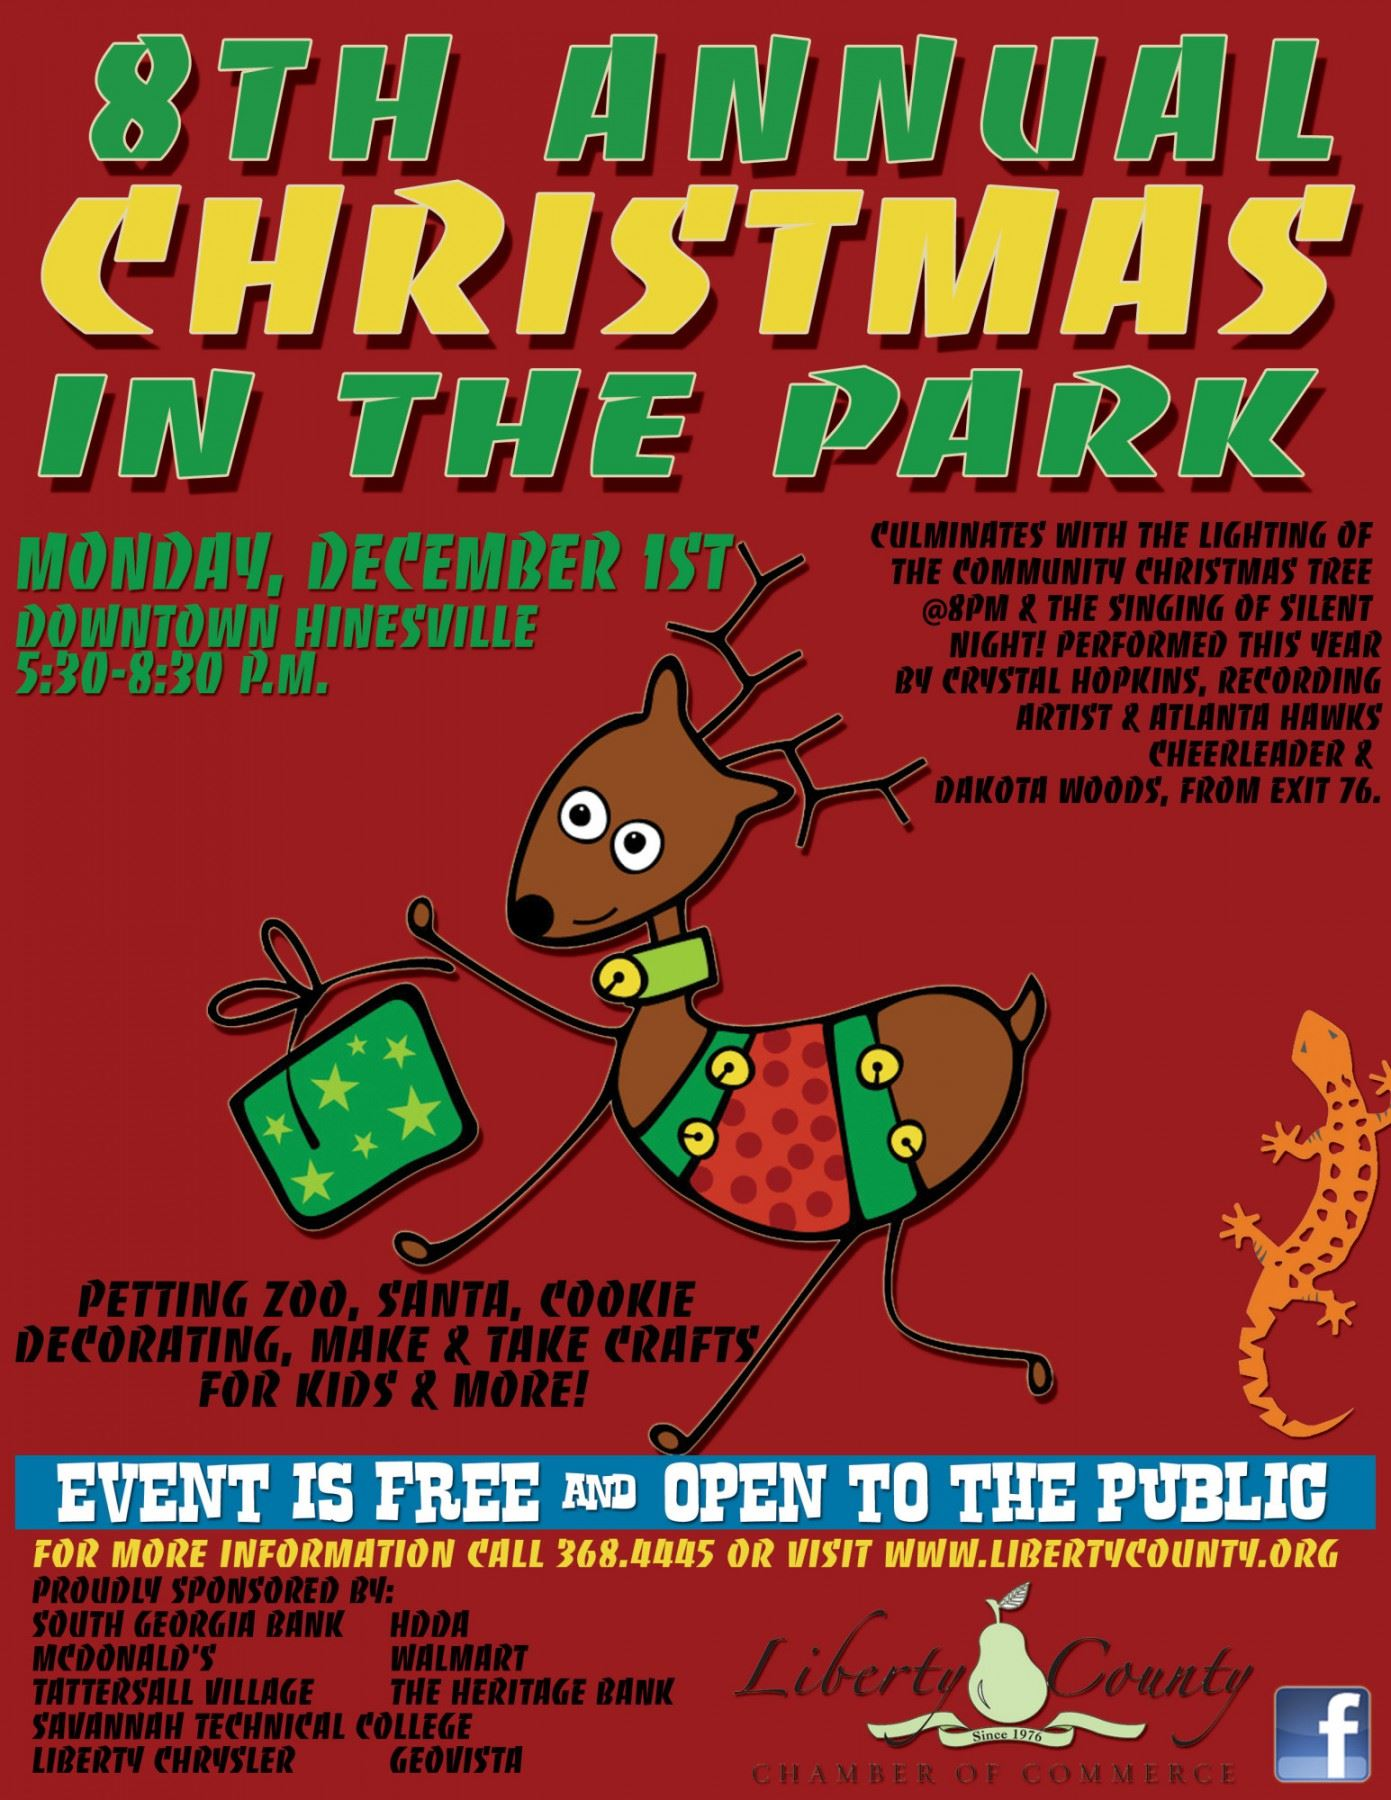 the liberty county chamber of commerce lccoc and liberty convention and visitors bureau cvb will host the 8th annual christmas in the park on monday - When Does Christmas In The Park Open